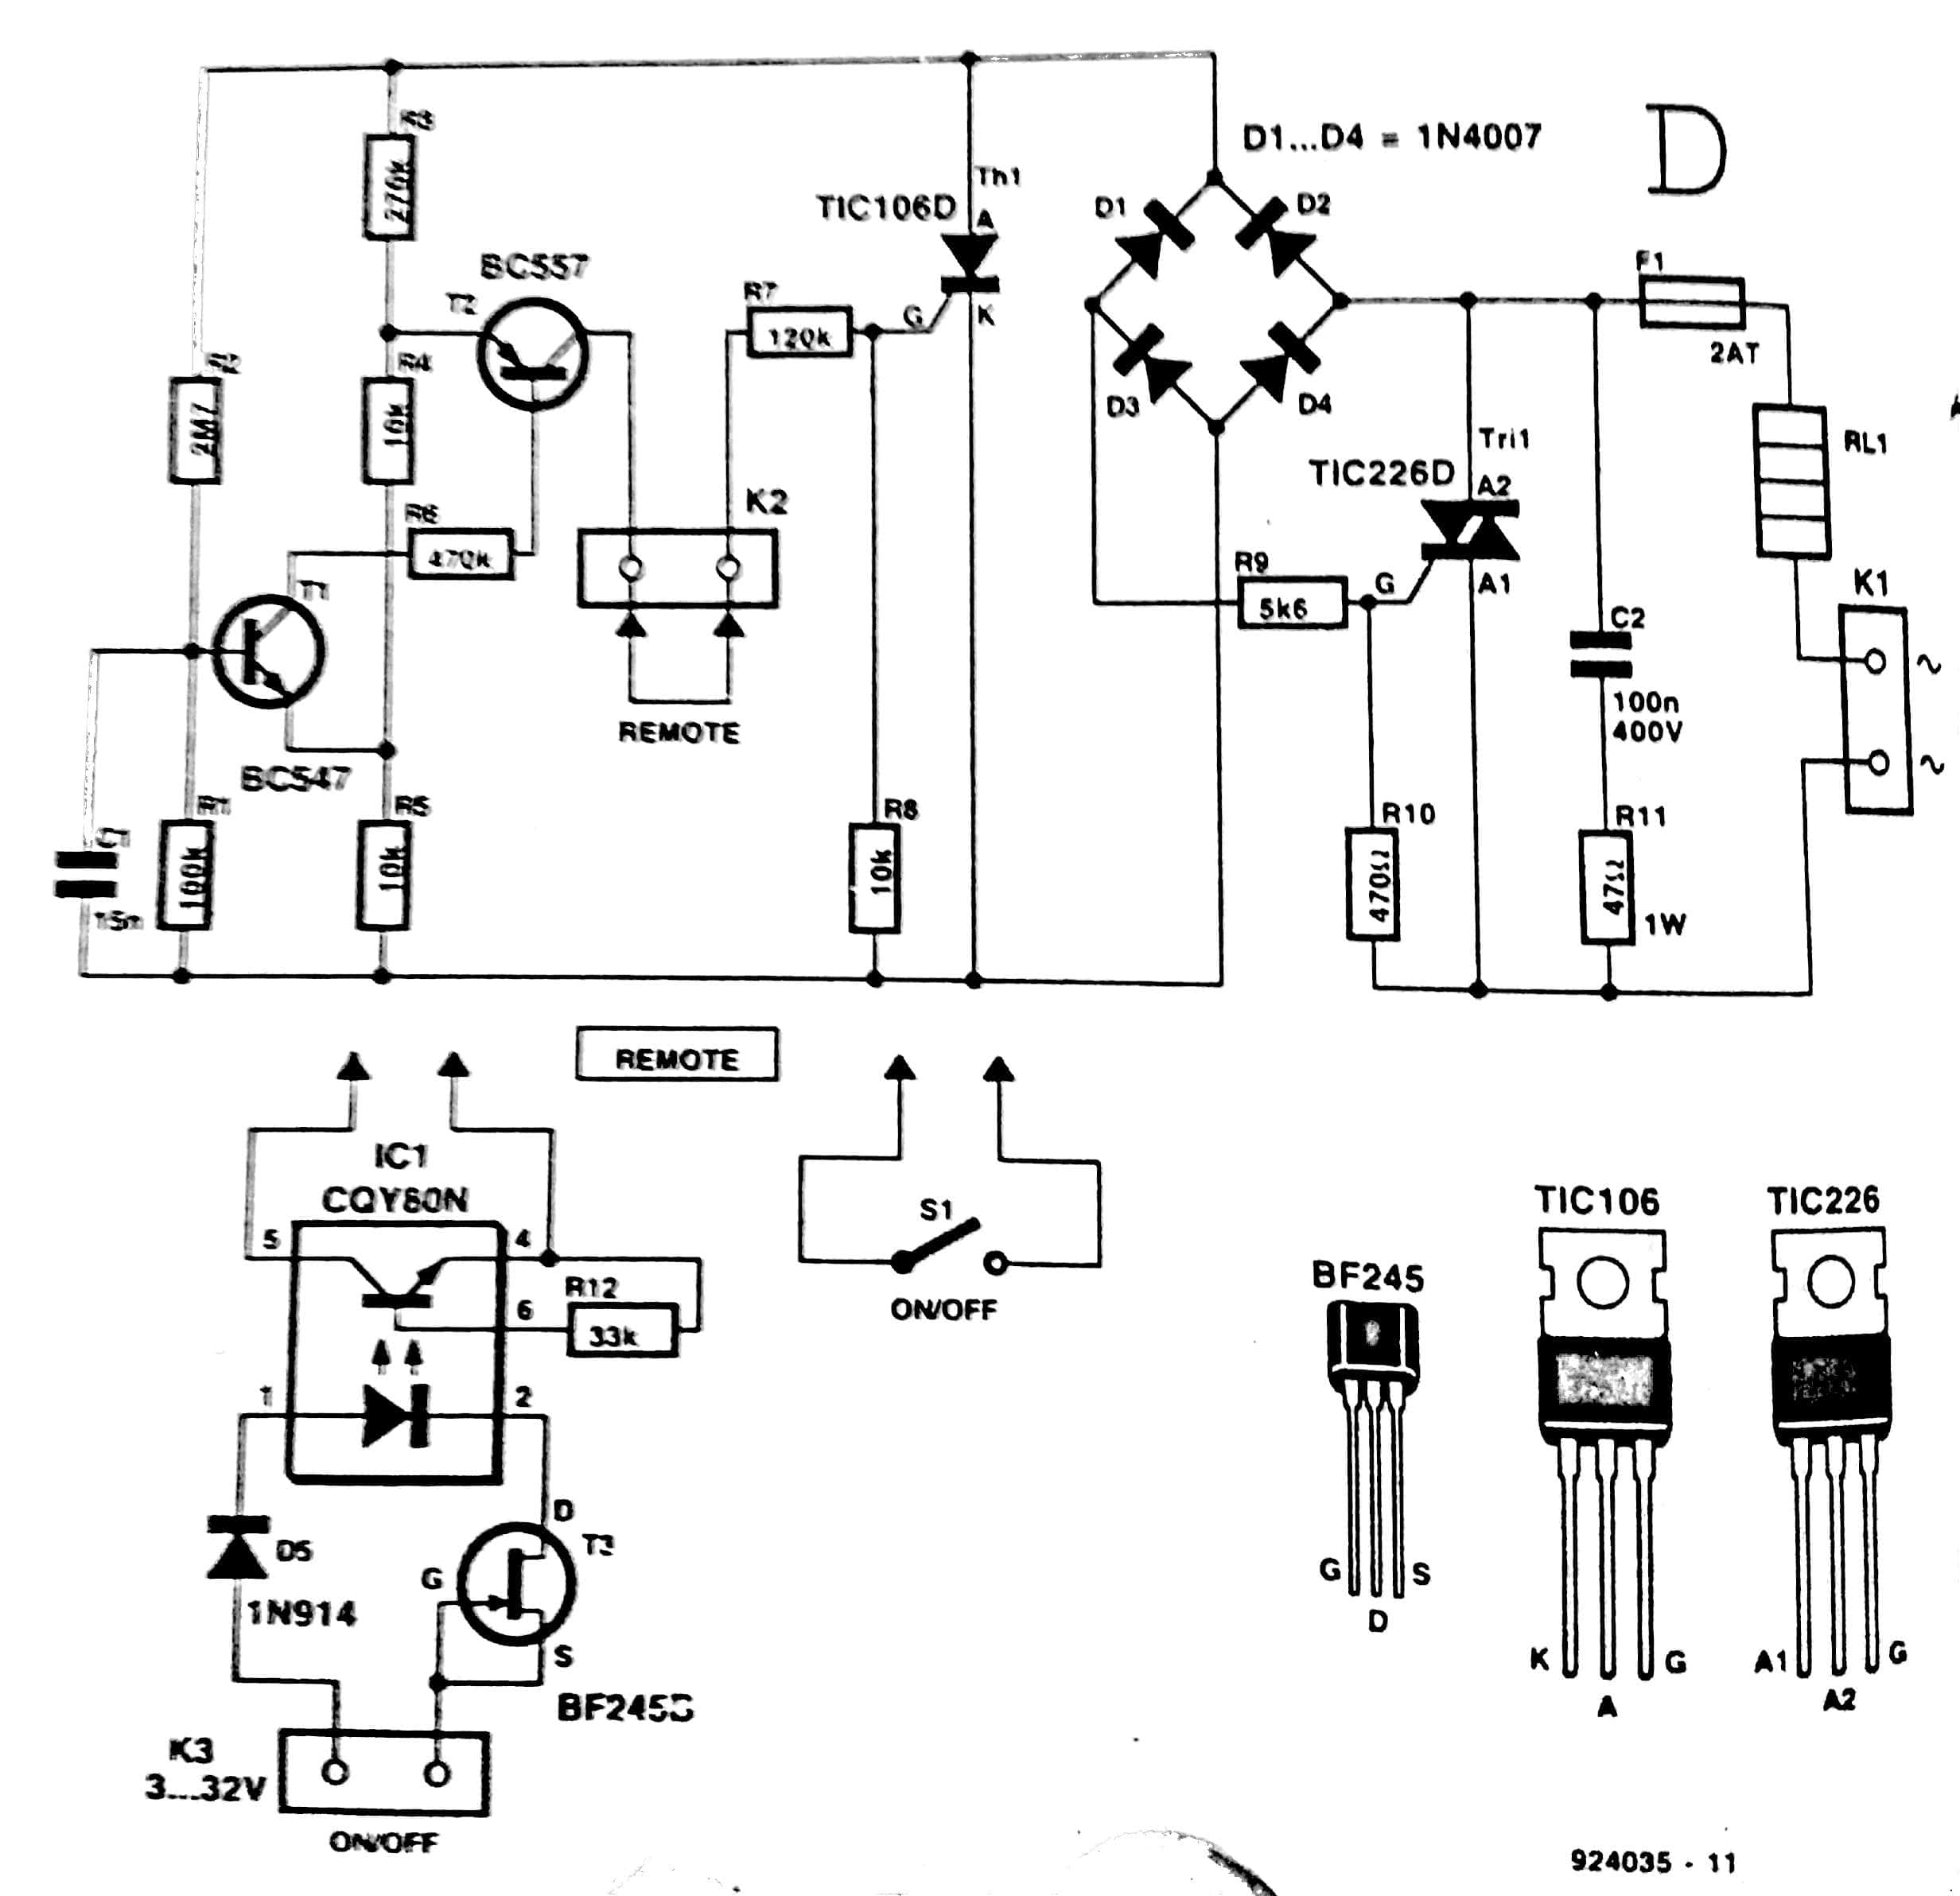 110 Inverter Wiring Diagram